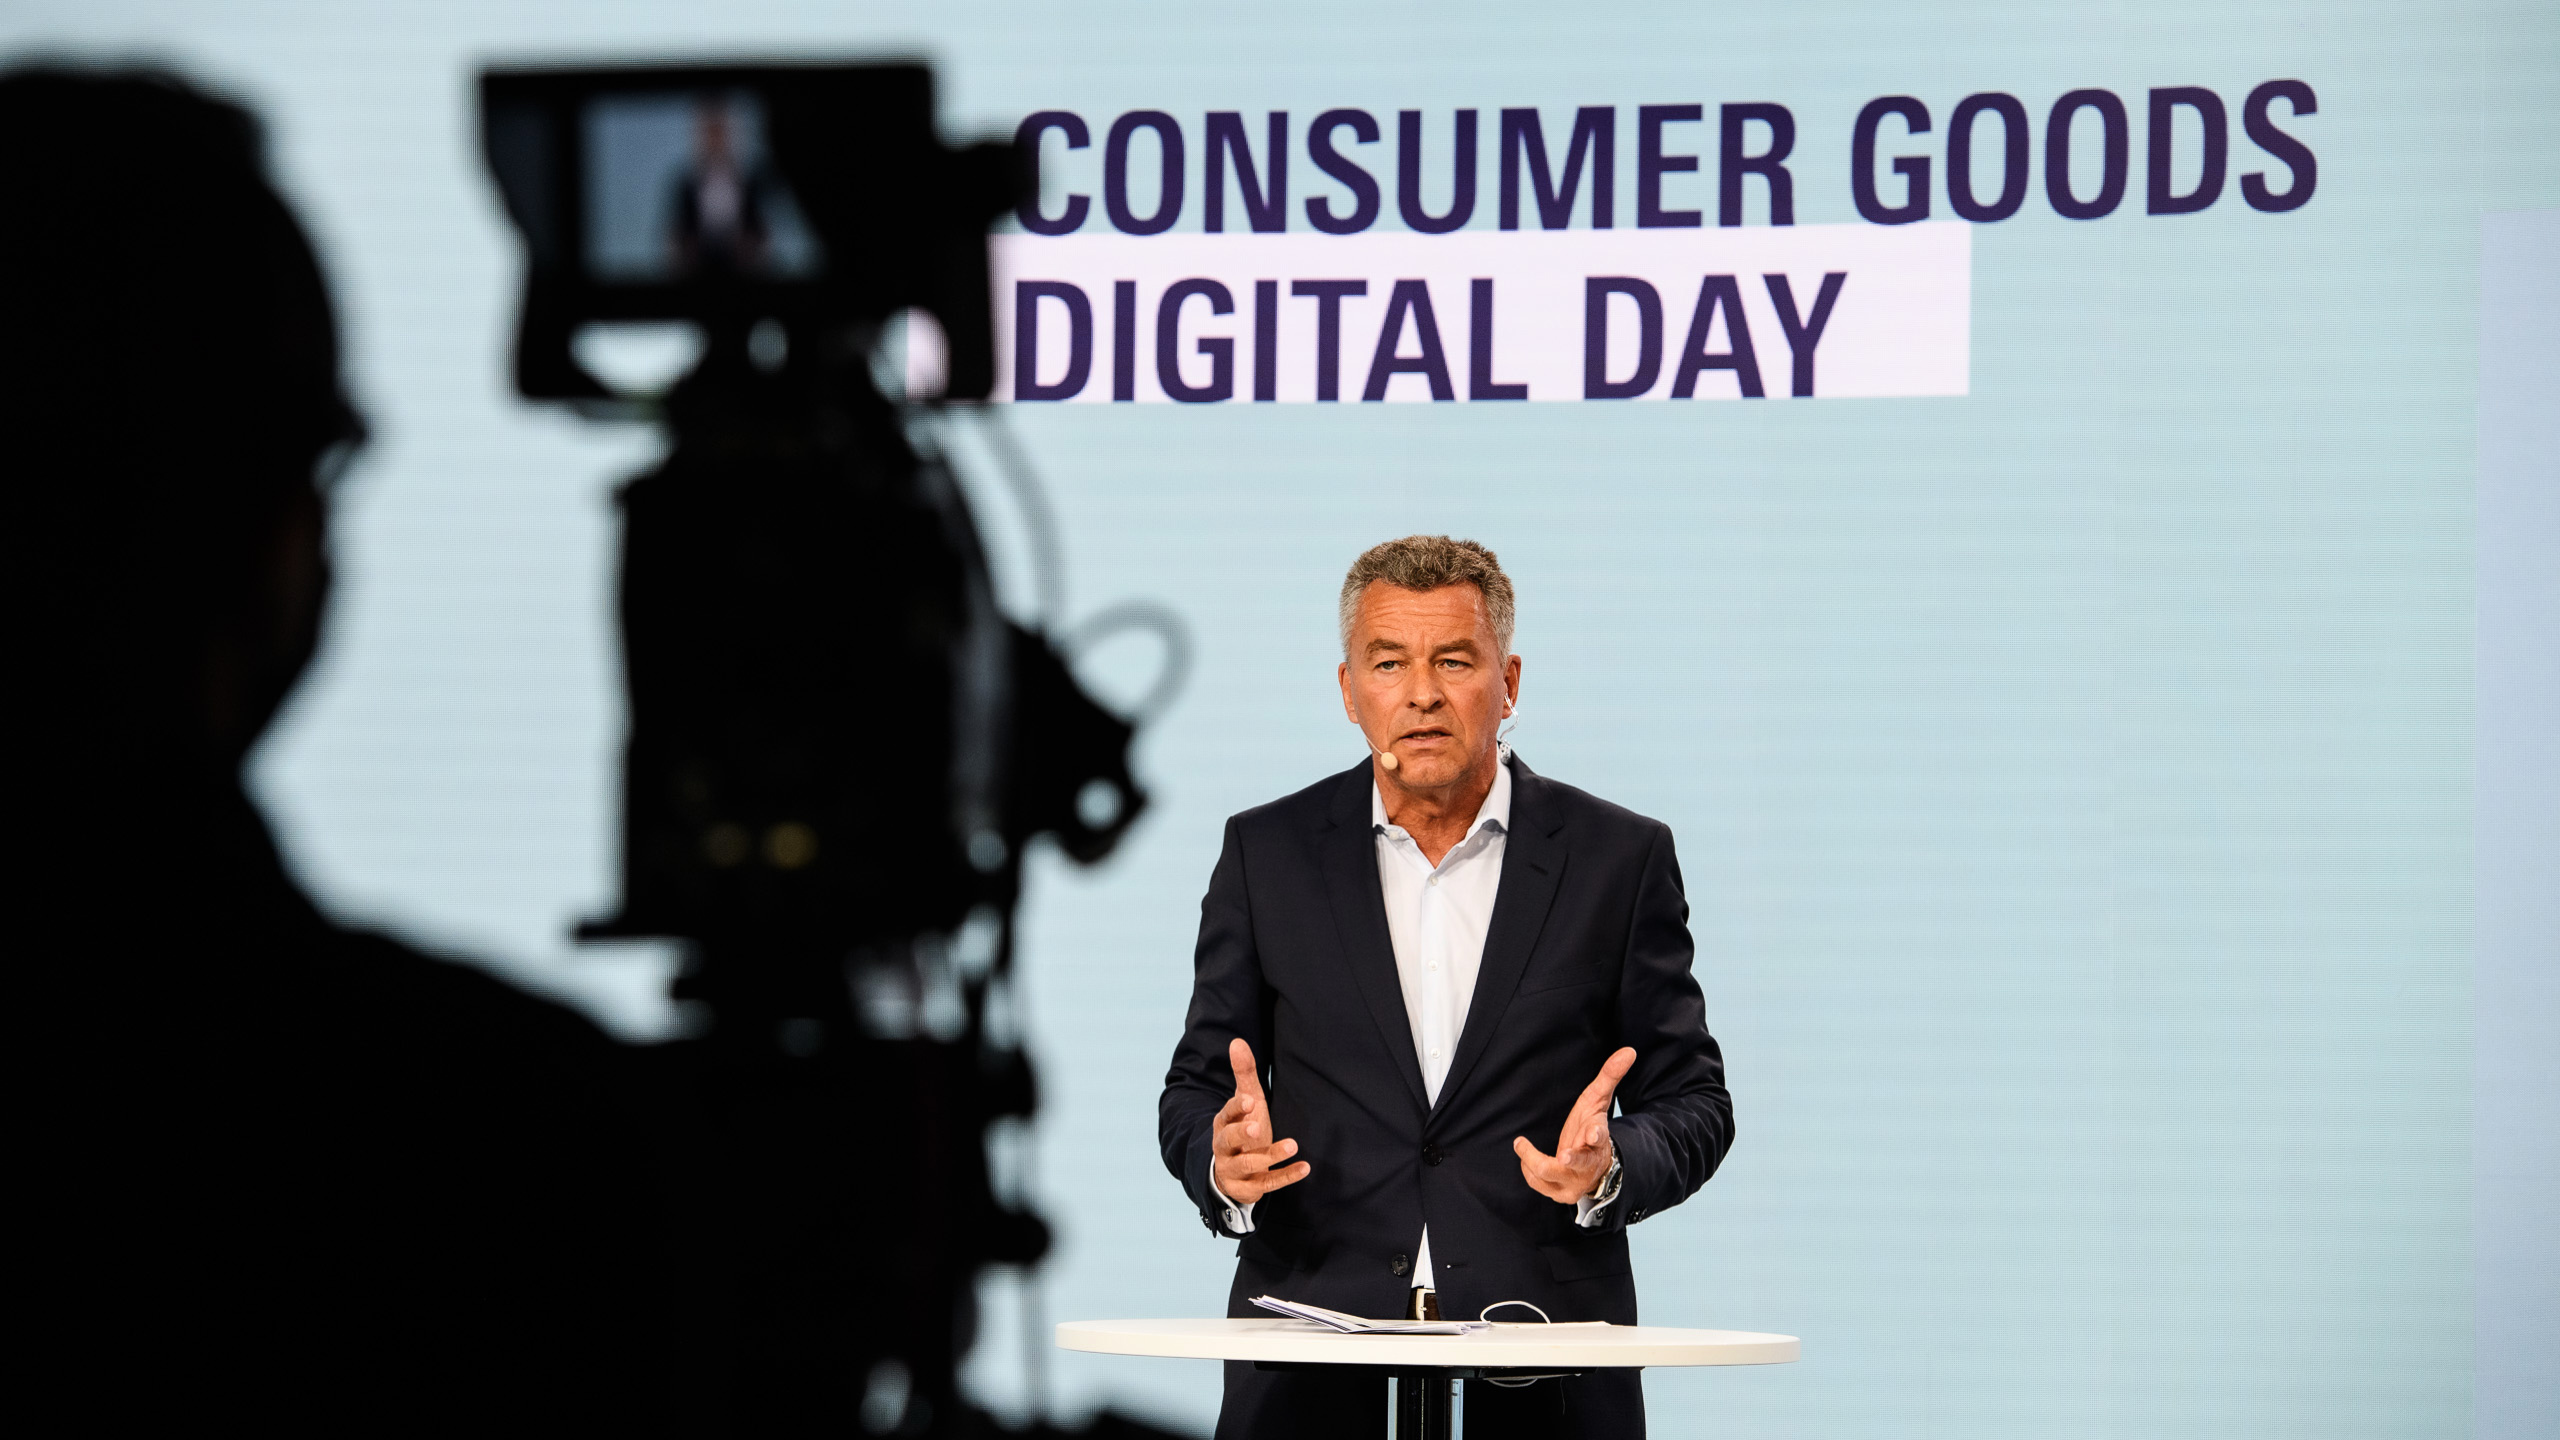 Consumer Goods Digital Day: a consistent look ahead is the message of the day. Presented by Detlef Braun, Member of the Board of Management of Messe Frankfurt, among others. Photo: Messe Frankfurt/Sutera